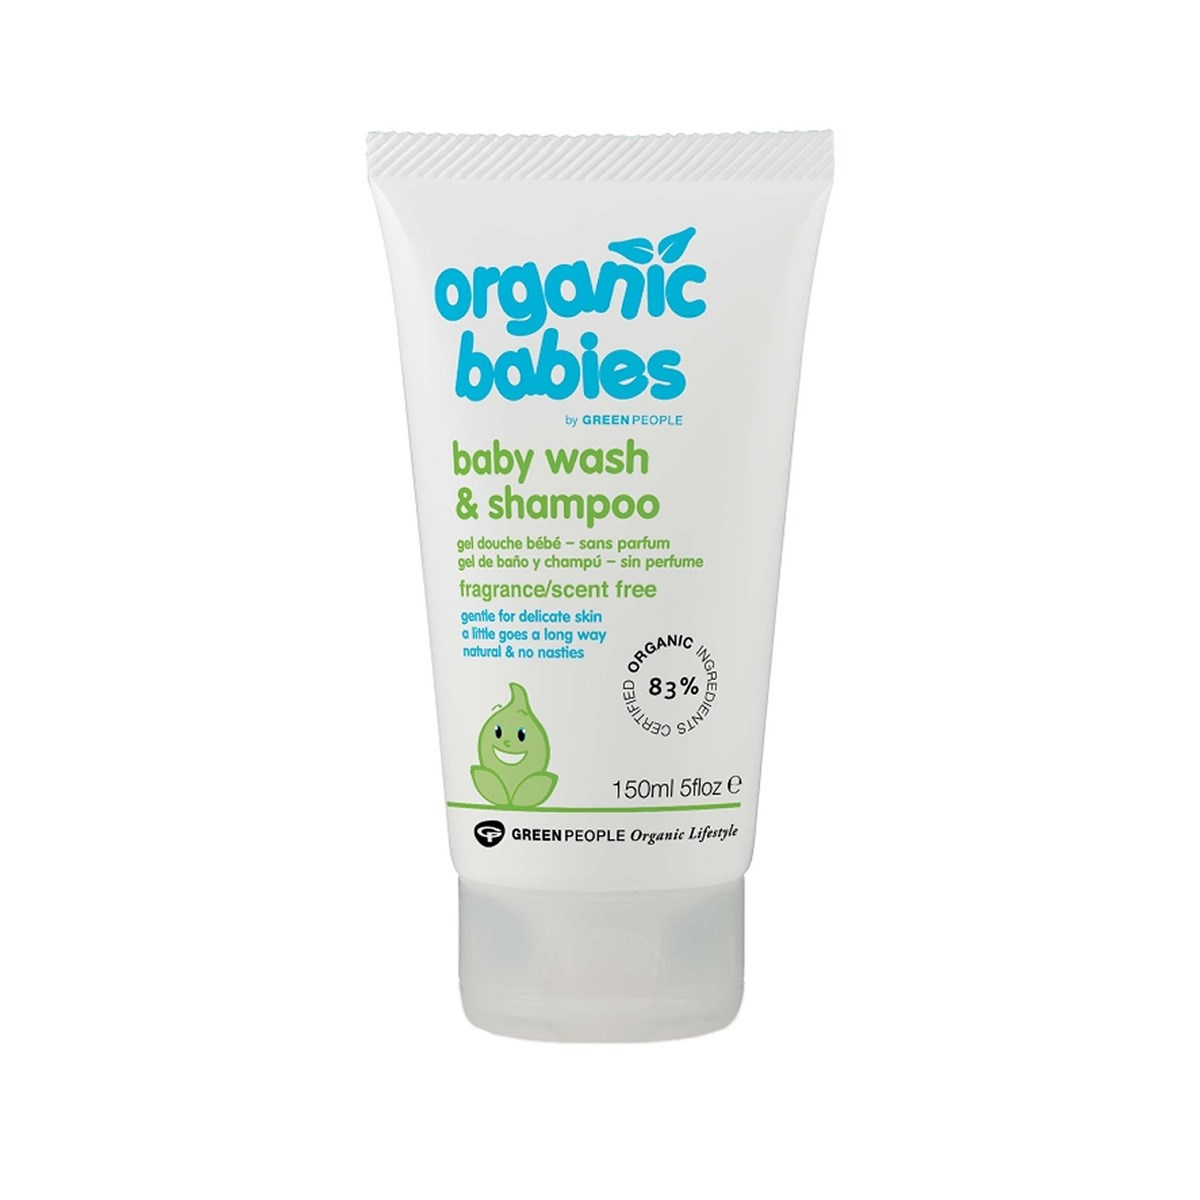 Green People Organic Babies Baby Wash & Shampoo Scent Free